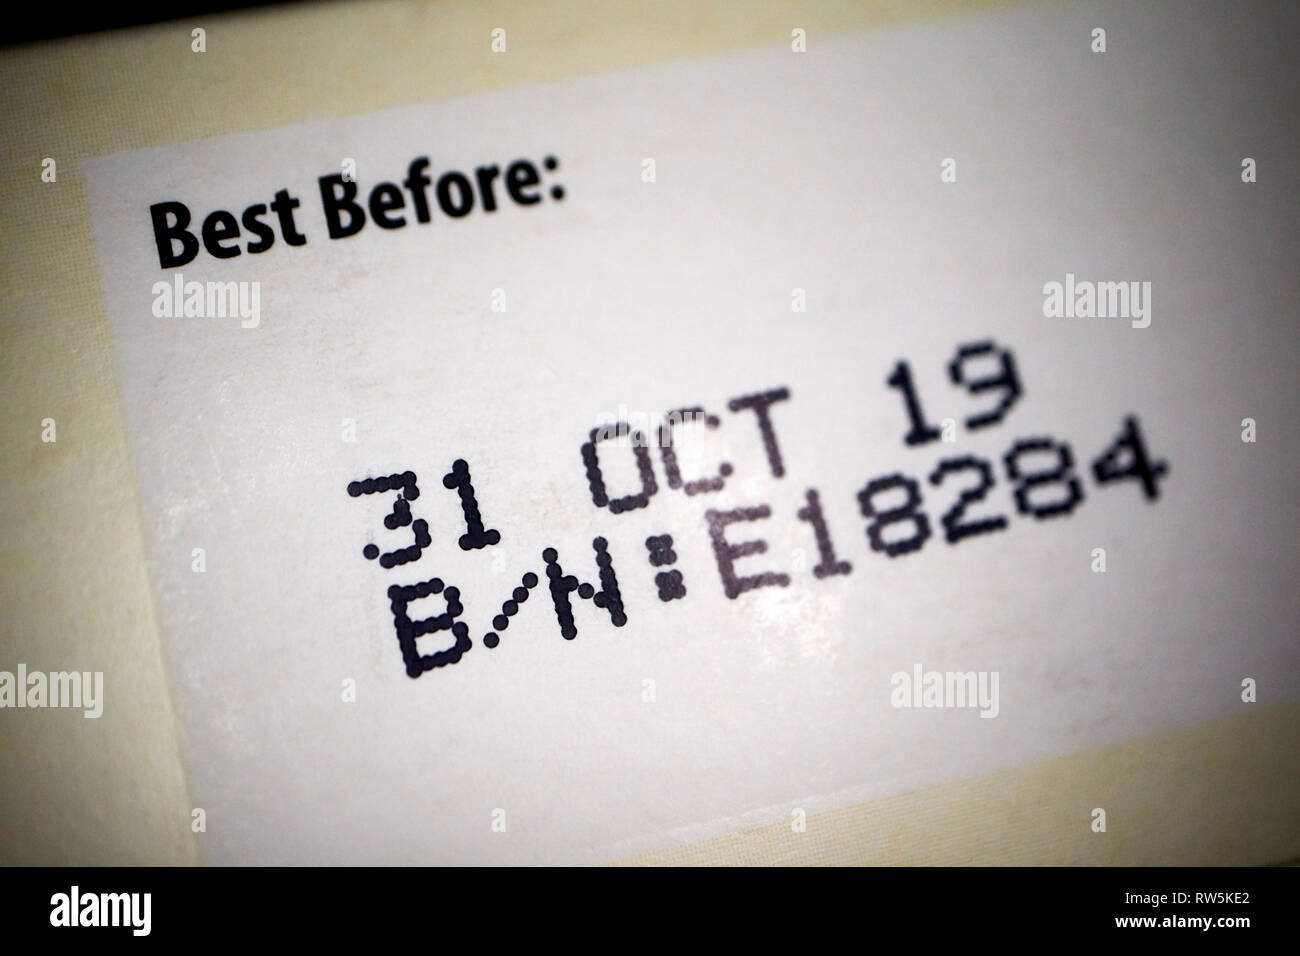 dot matrix printed best before label on food packaging - Stock Image